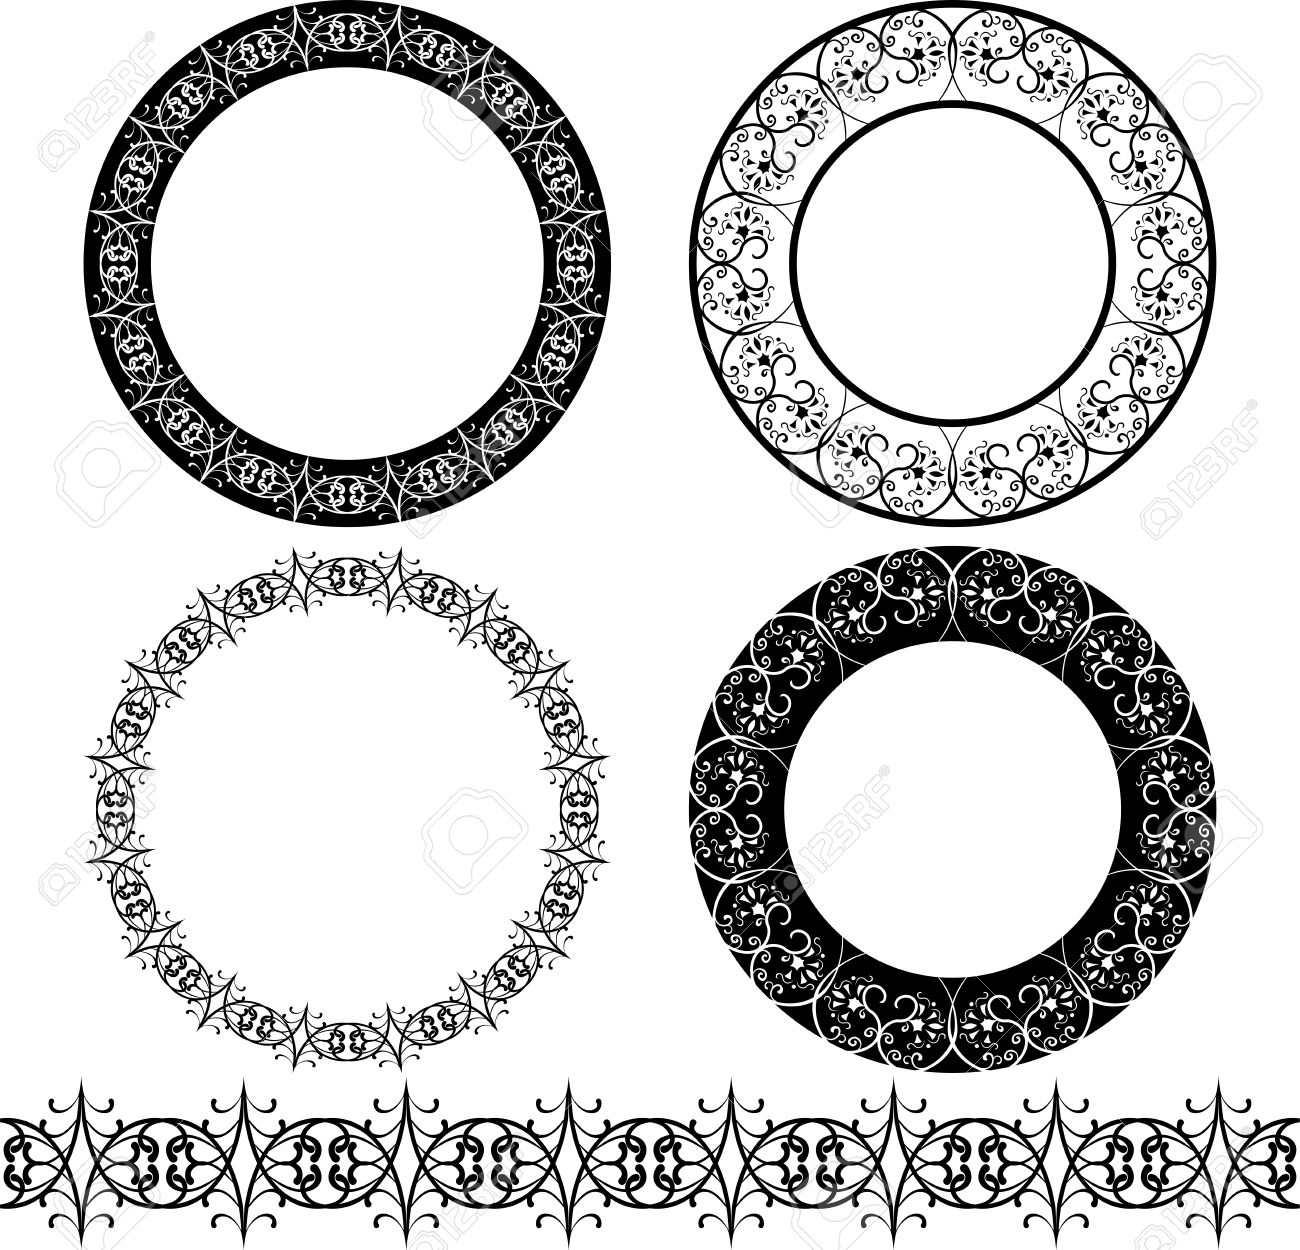 a set of black circular pattern stencil royalty free cliparts